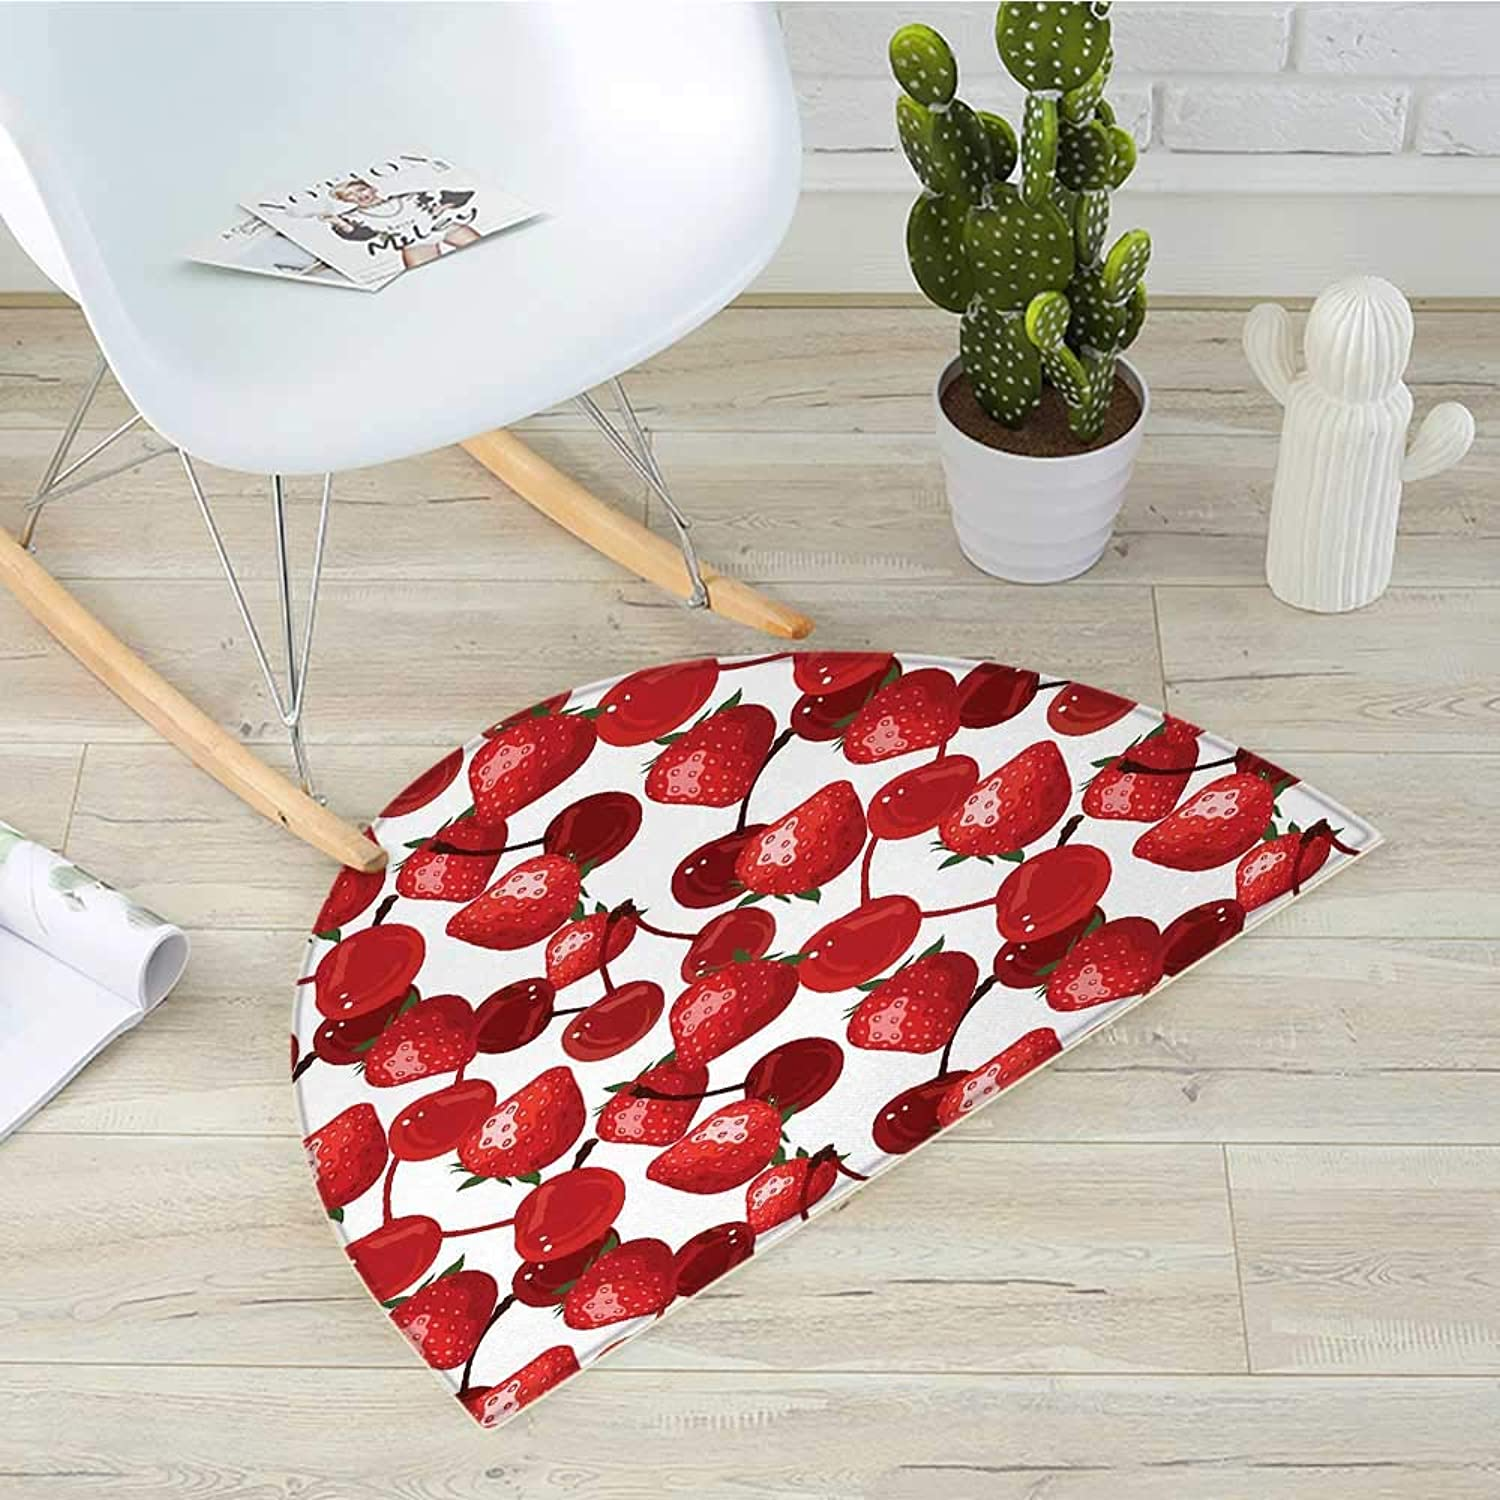 Red Semicircle Doormat Strawberries and Cherries Spring Fruits Organic Food and Picnic Image Halfmoon doormats H 39.3  xD 59  Burgundy Green and White